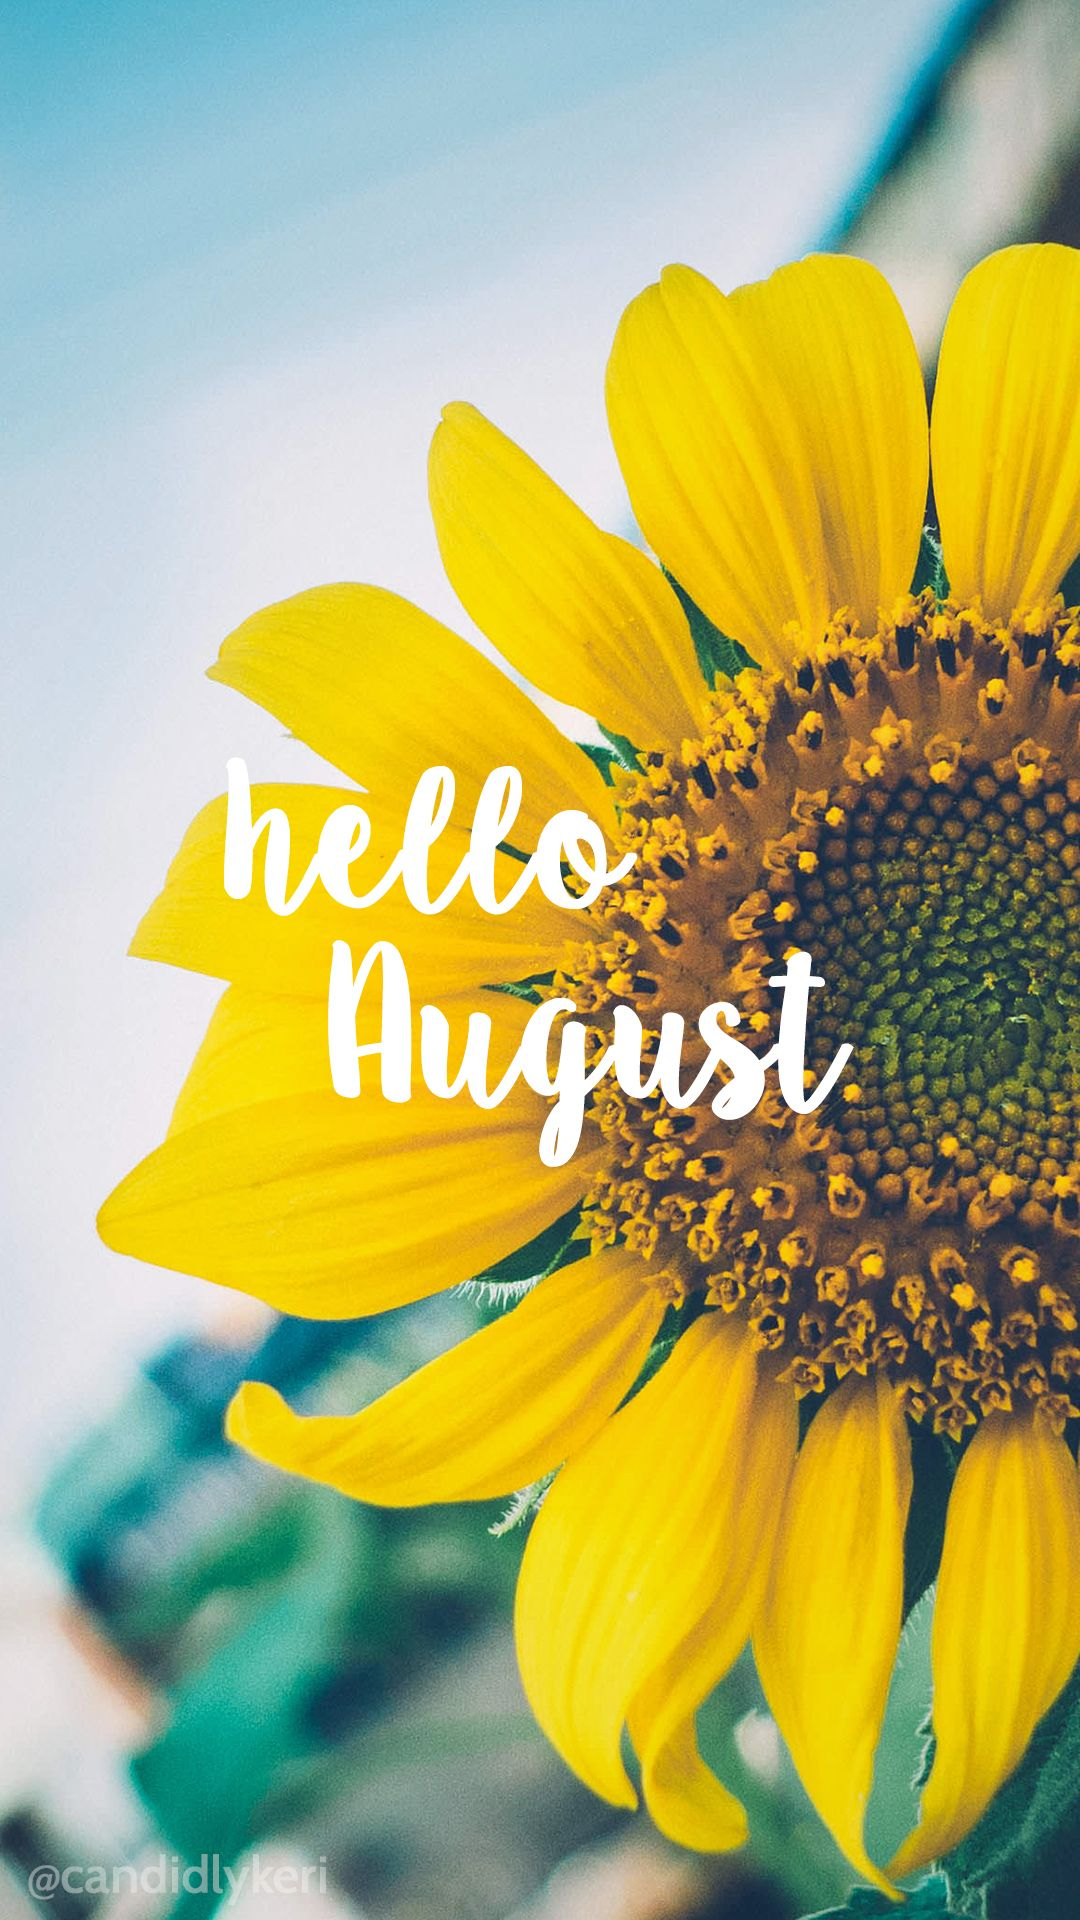 hello august sunflower bright happy background august 2016 wallpaper